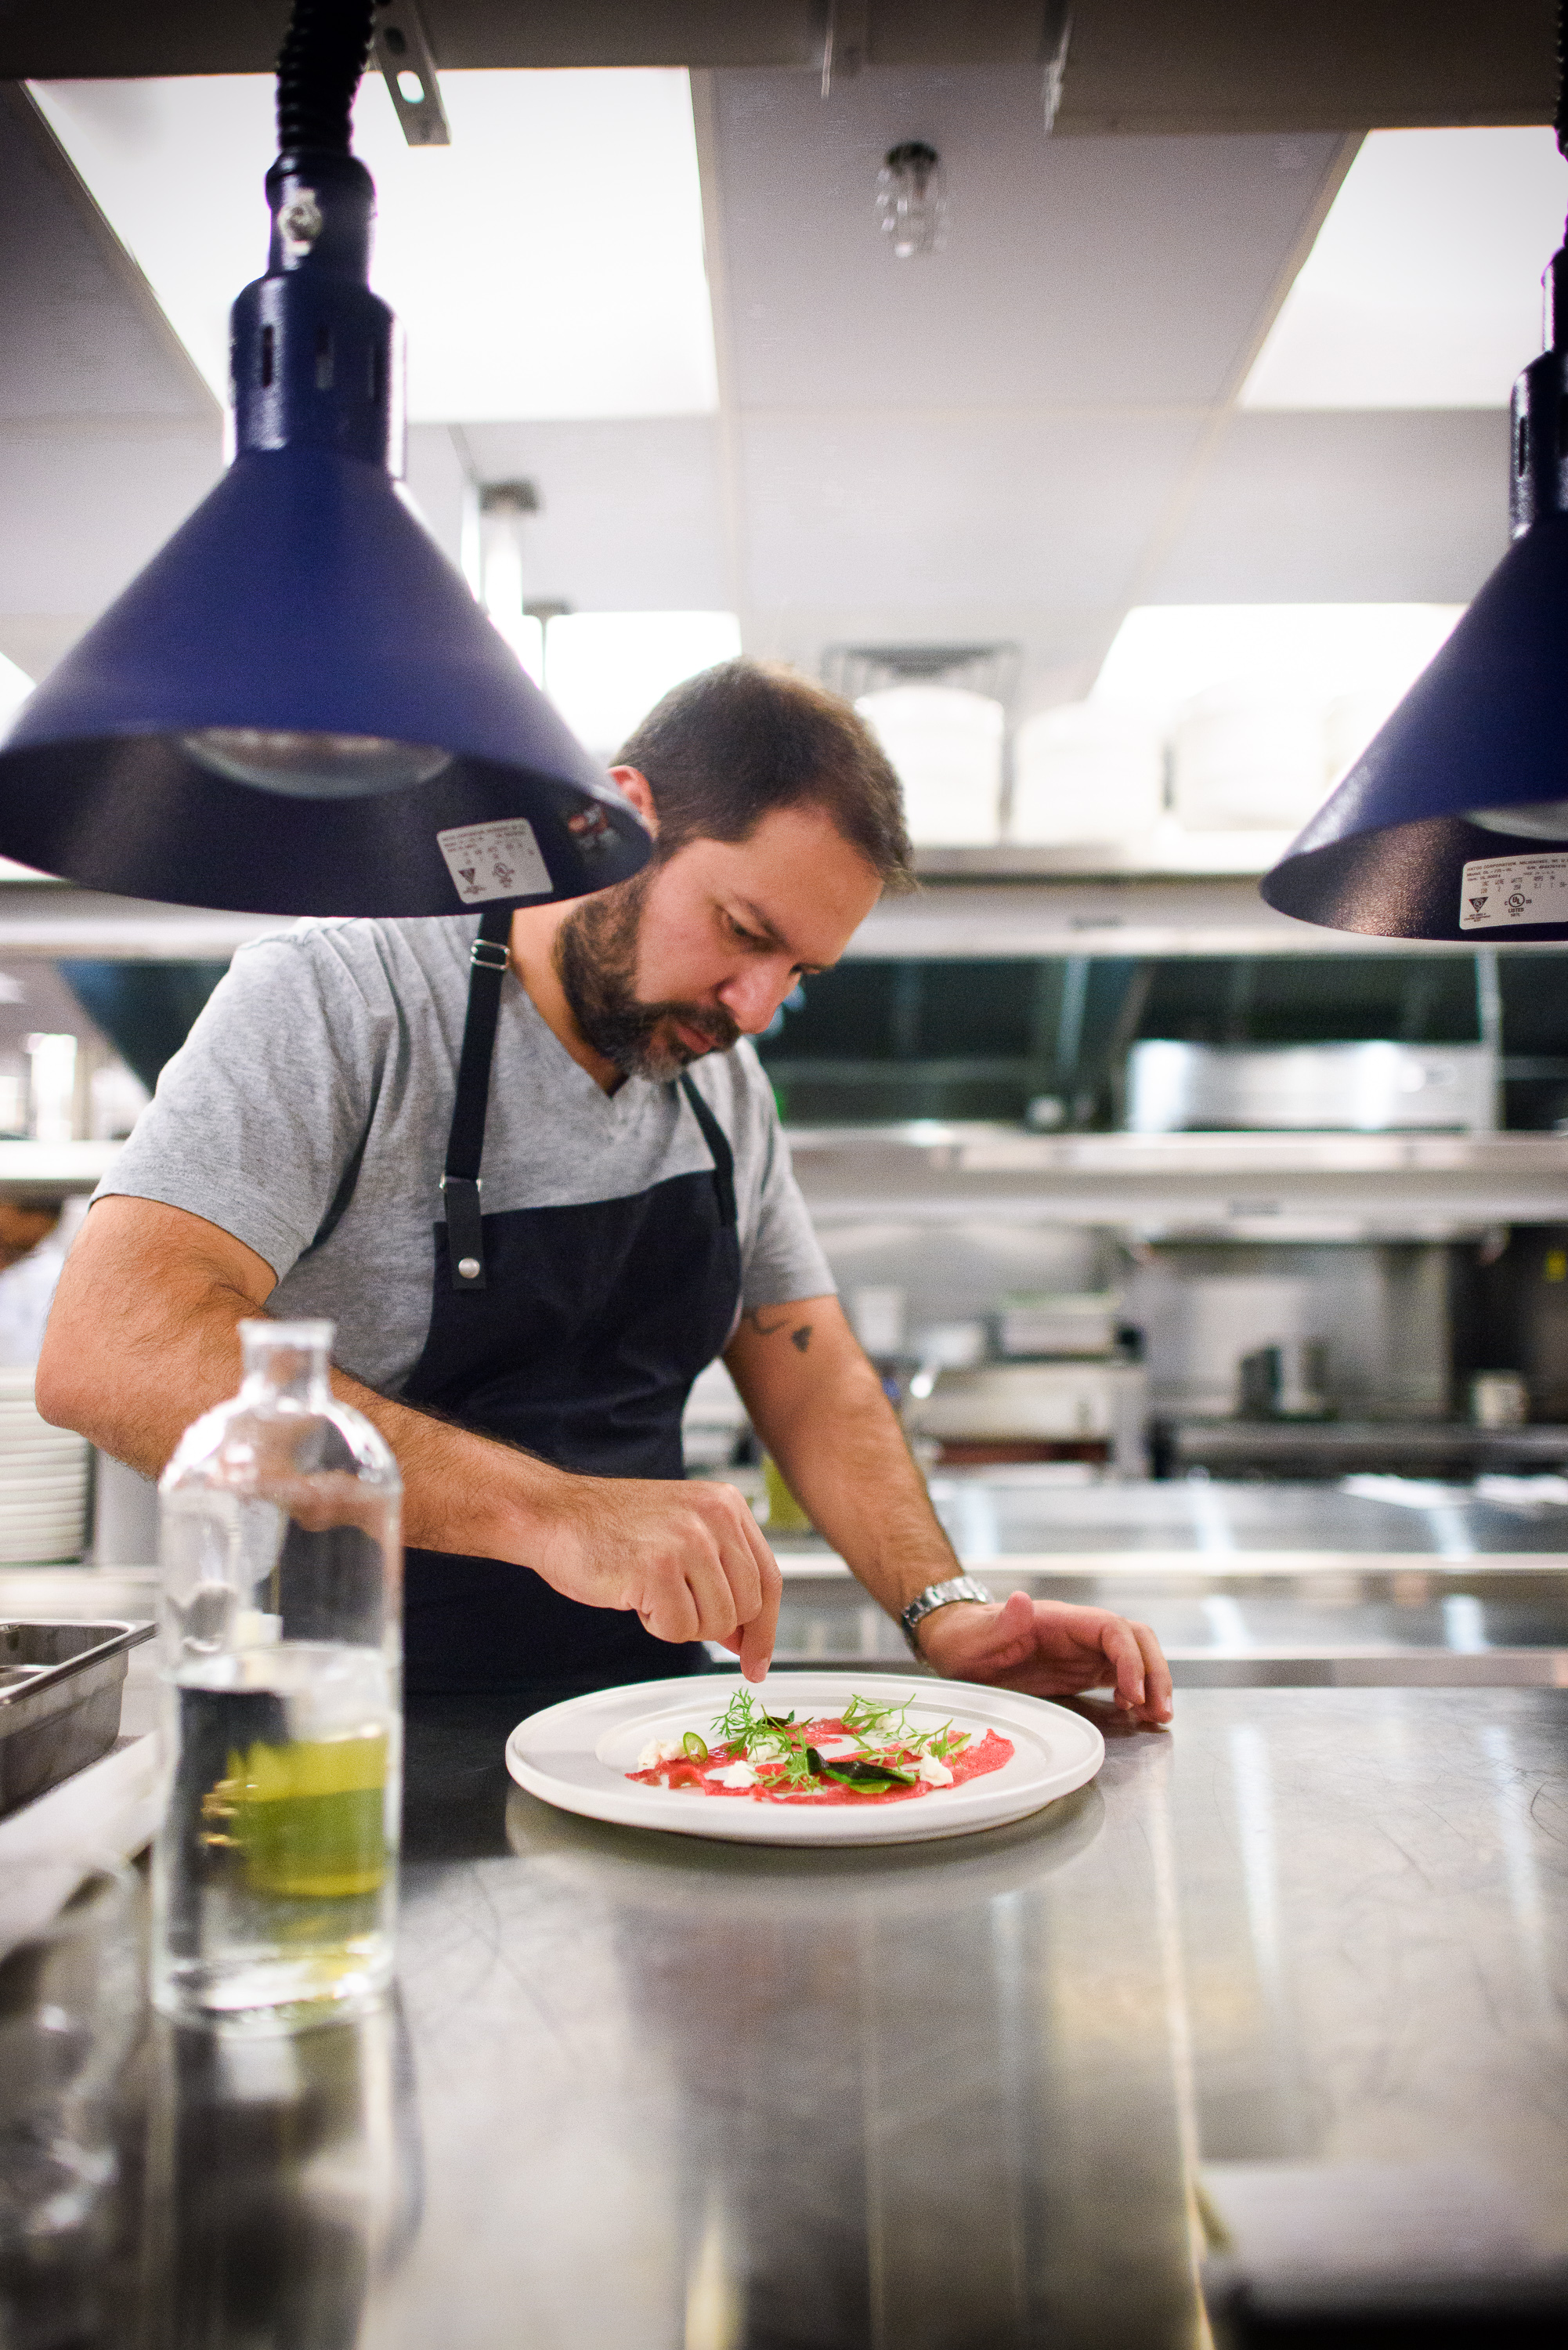 Chef Enrique Olvera finishing plating of the beef skirt caspacci